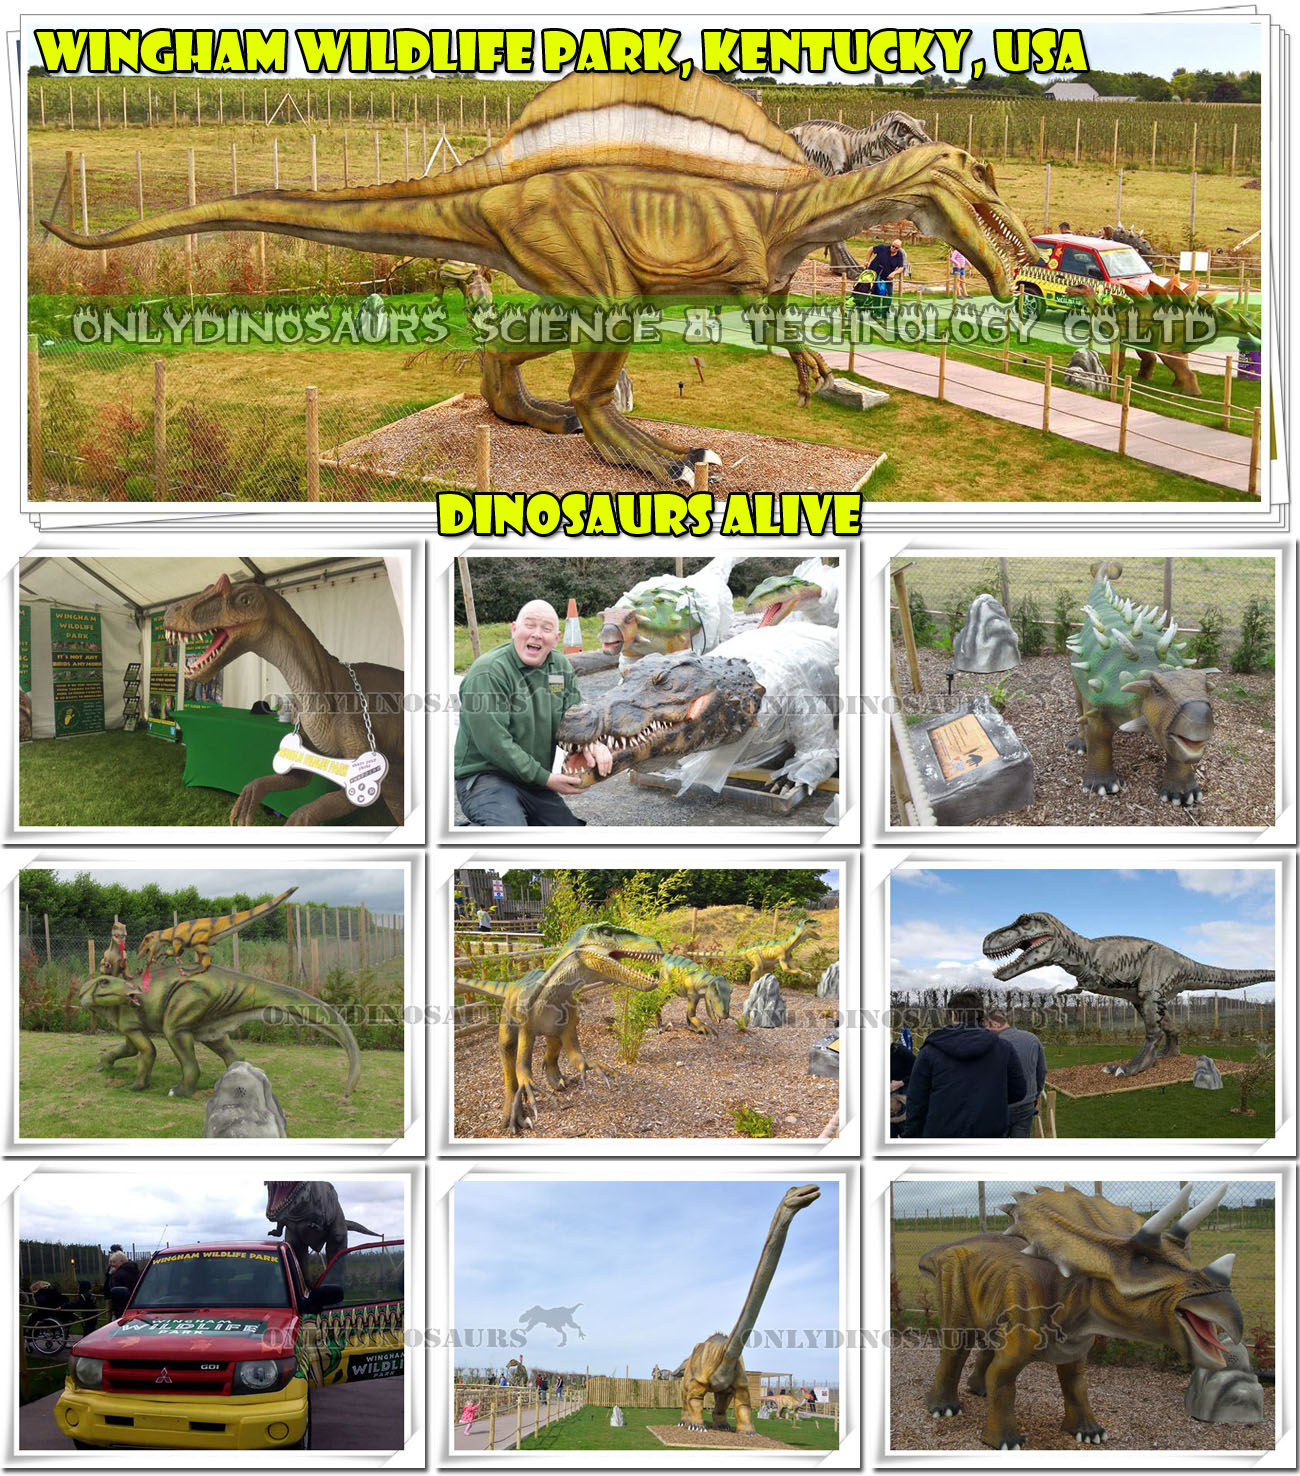 Dinosaurs Alive in Wildlife Park